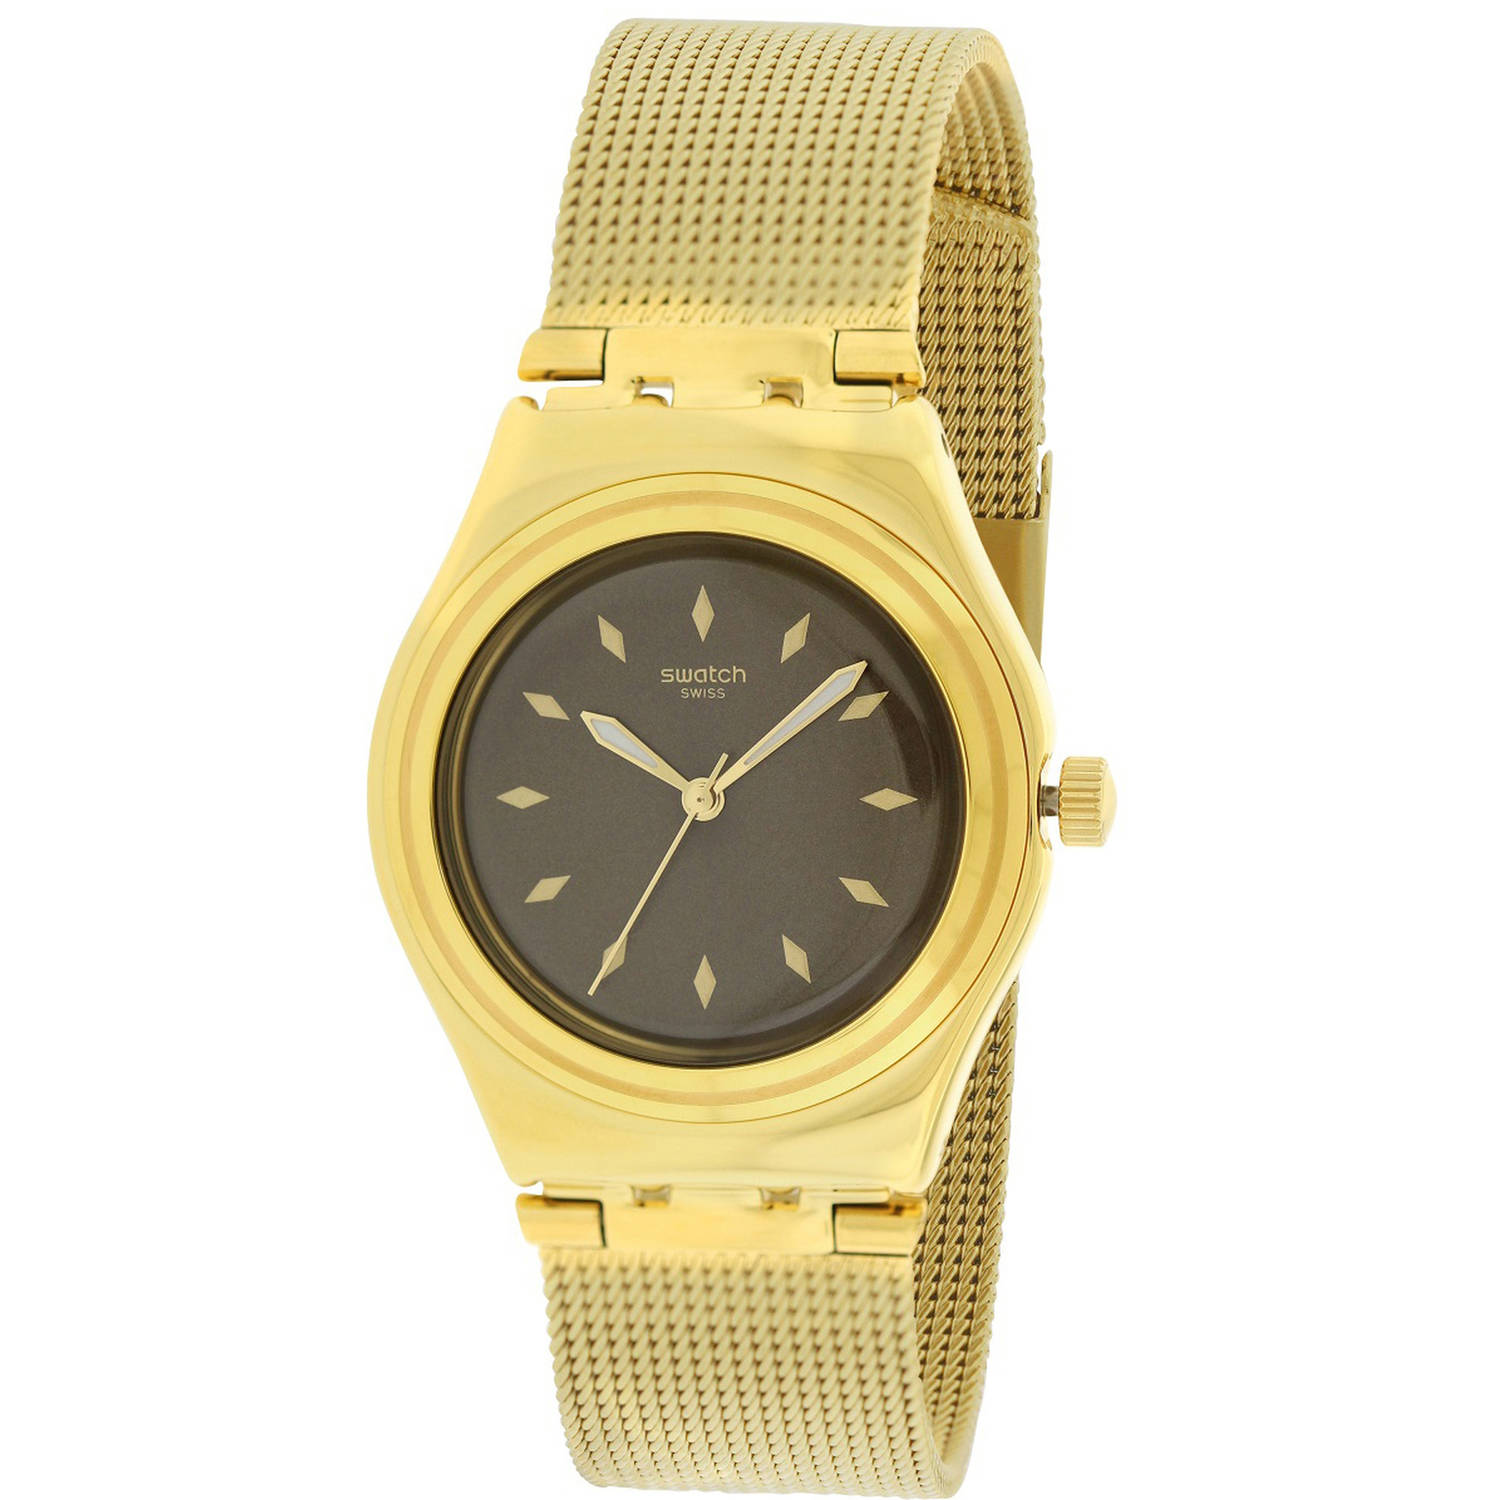 Swatch LOSANGE Unisex Watch YLG133M by Swatch